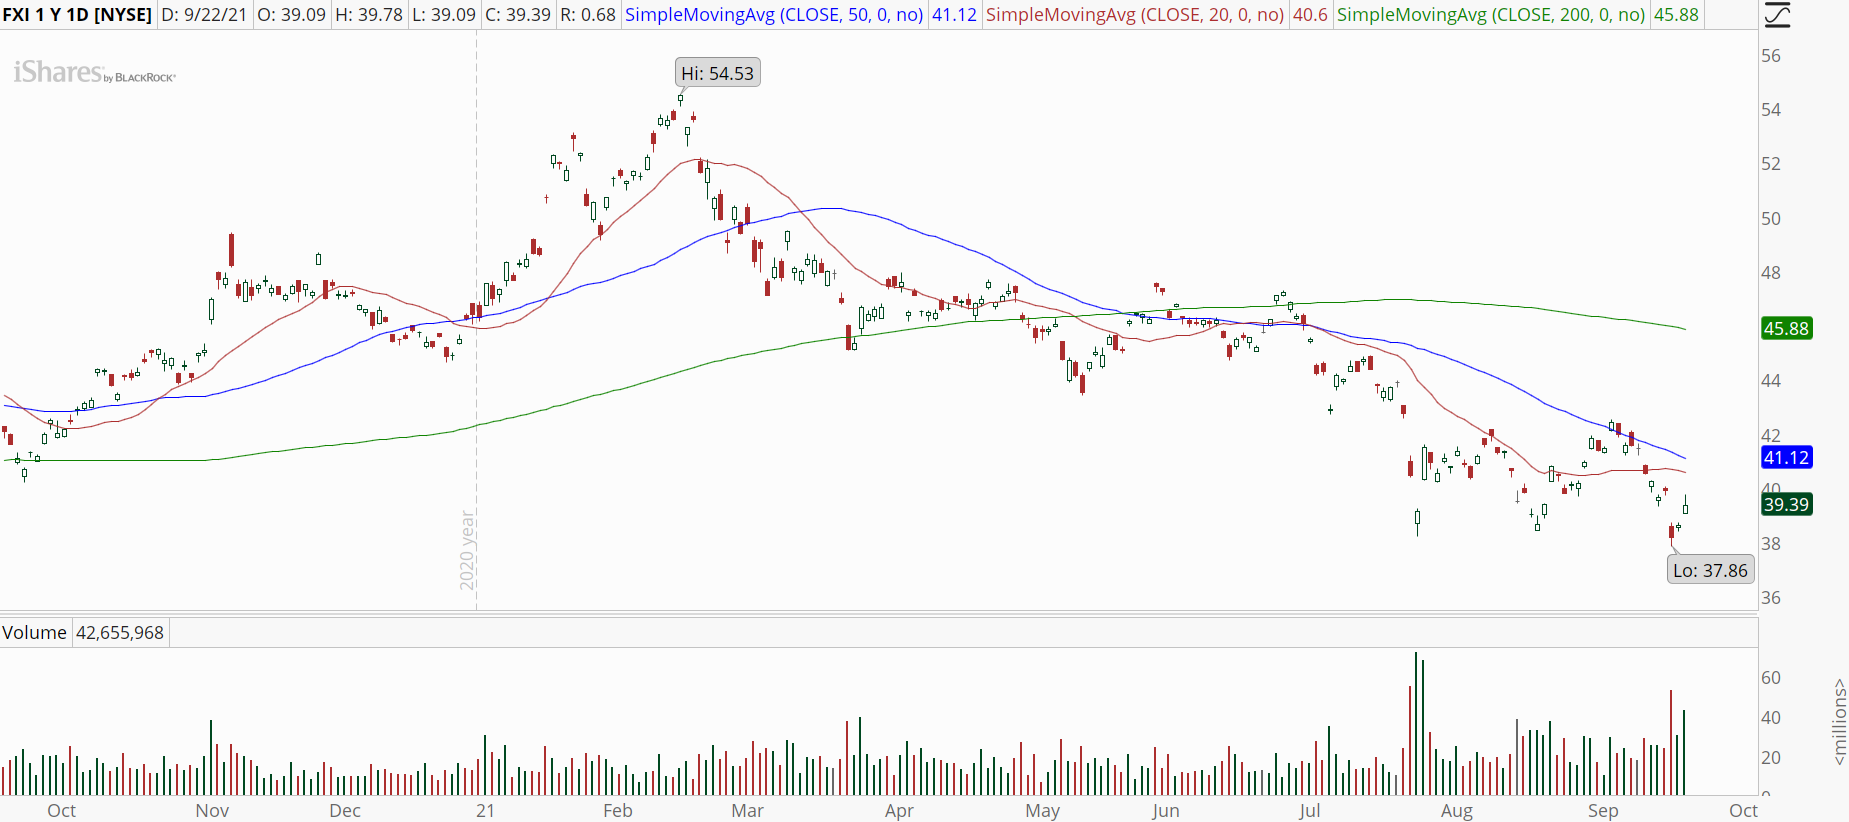 iShares China Large-Cap ETF (FXI) stock chart with downtrend